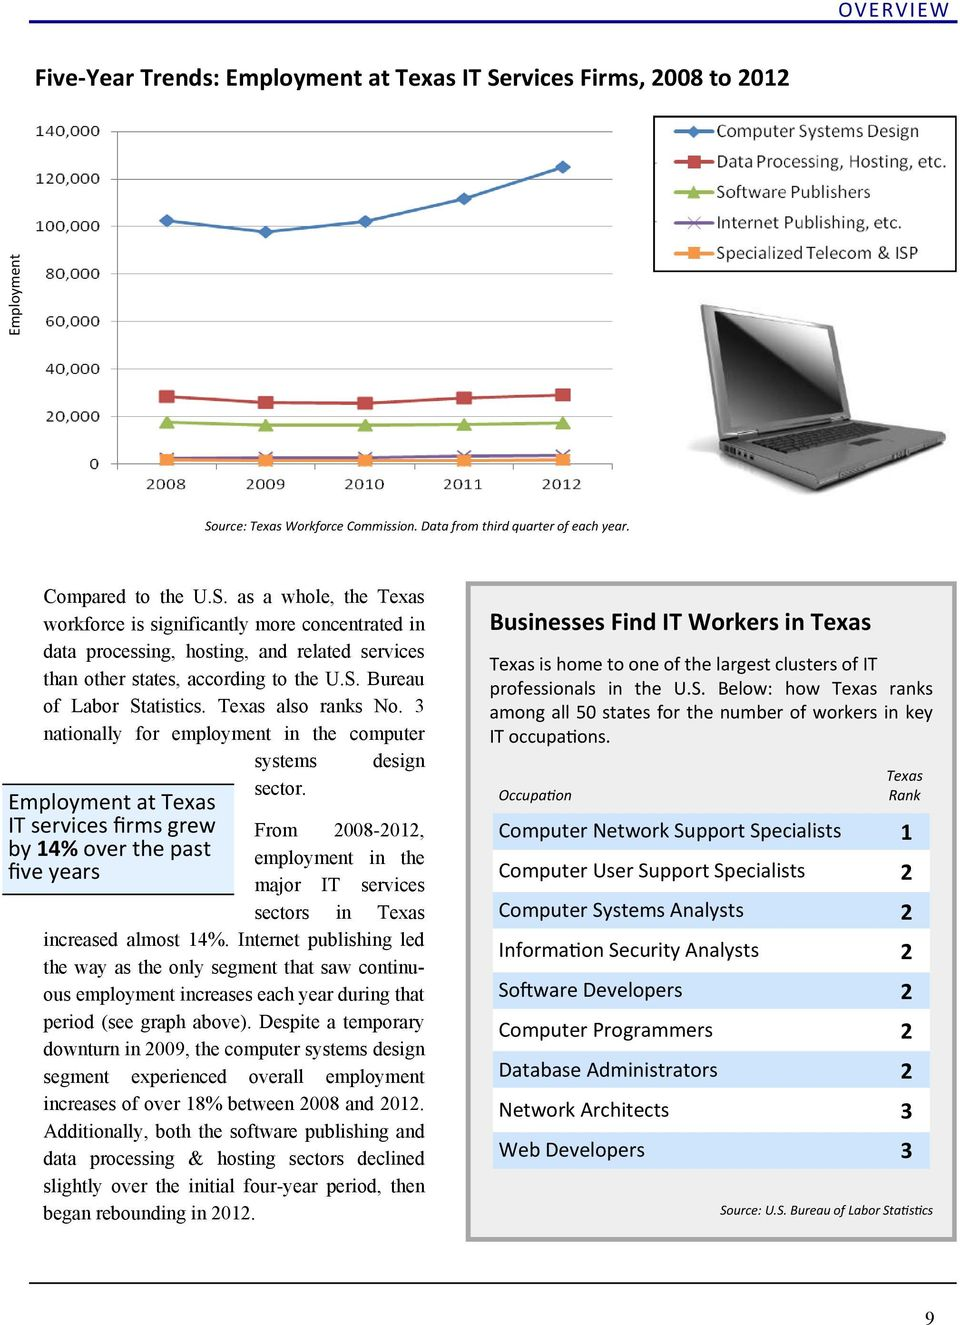 S. Bureau of Labor Statistics. Texas also ranks No. 3 nationally for employment in the computer systems design sector.